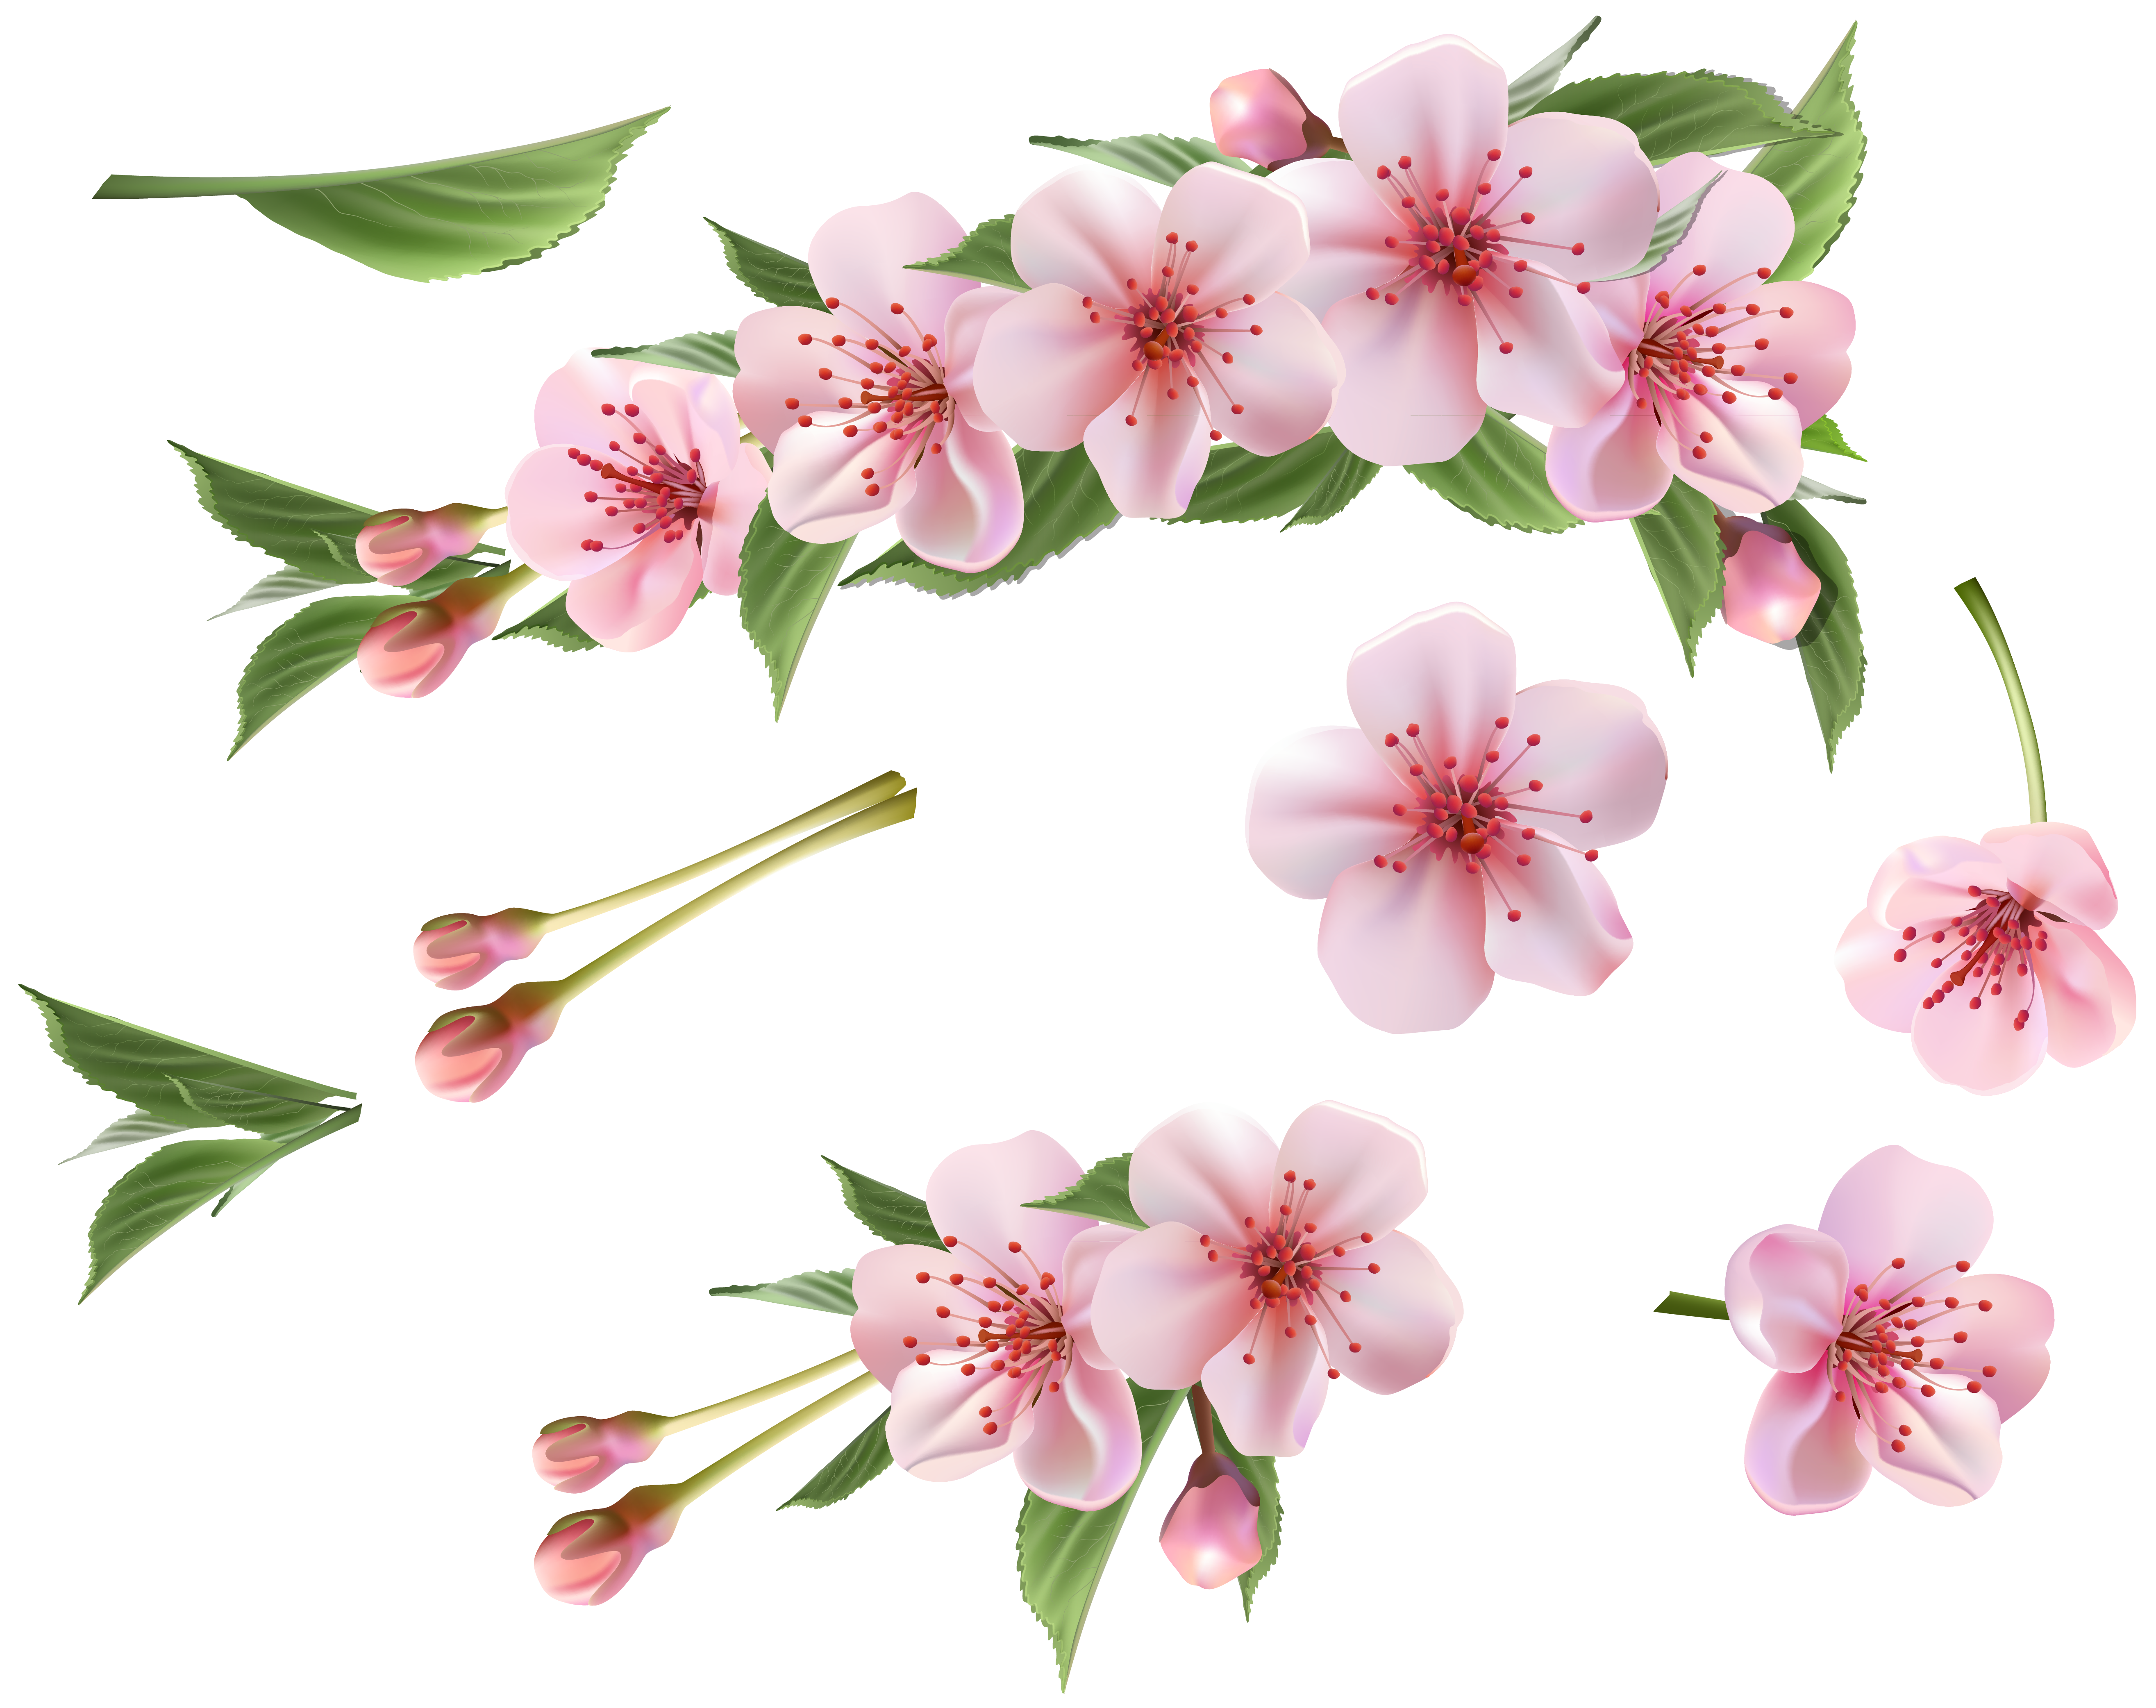 Spring branch clipart #6